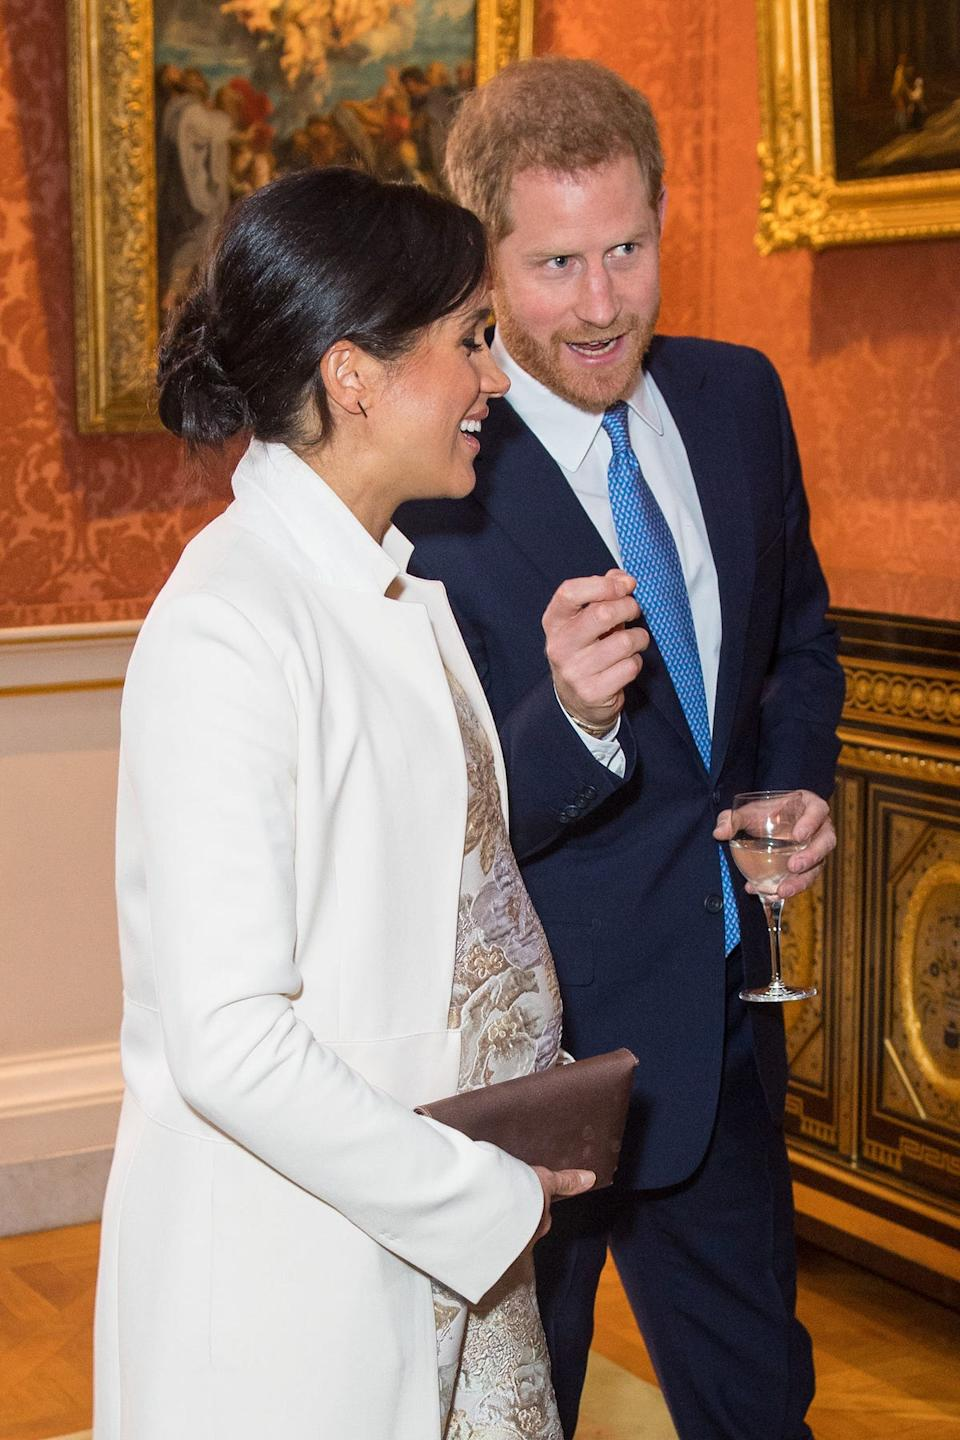 Harry and Meghan laugh